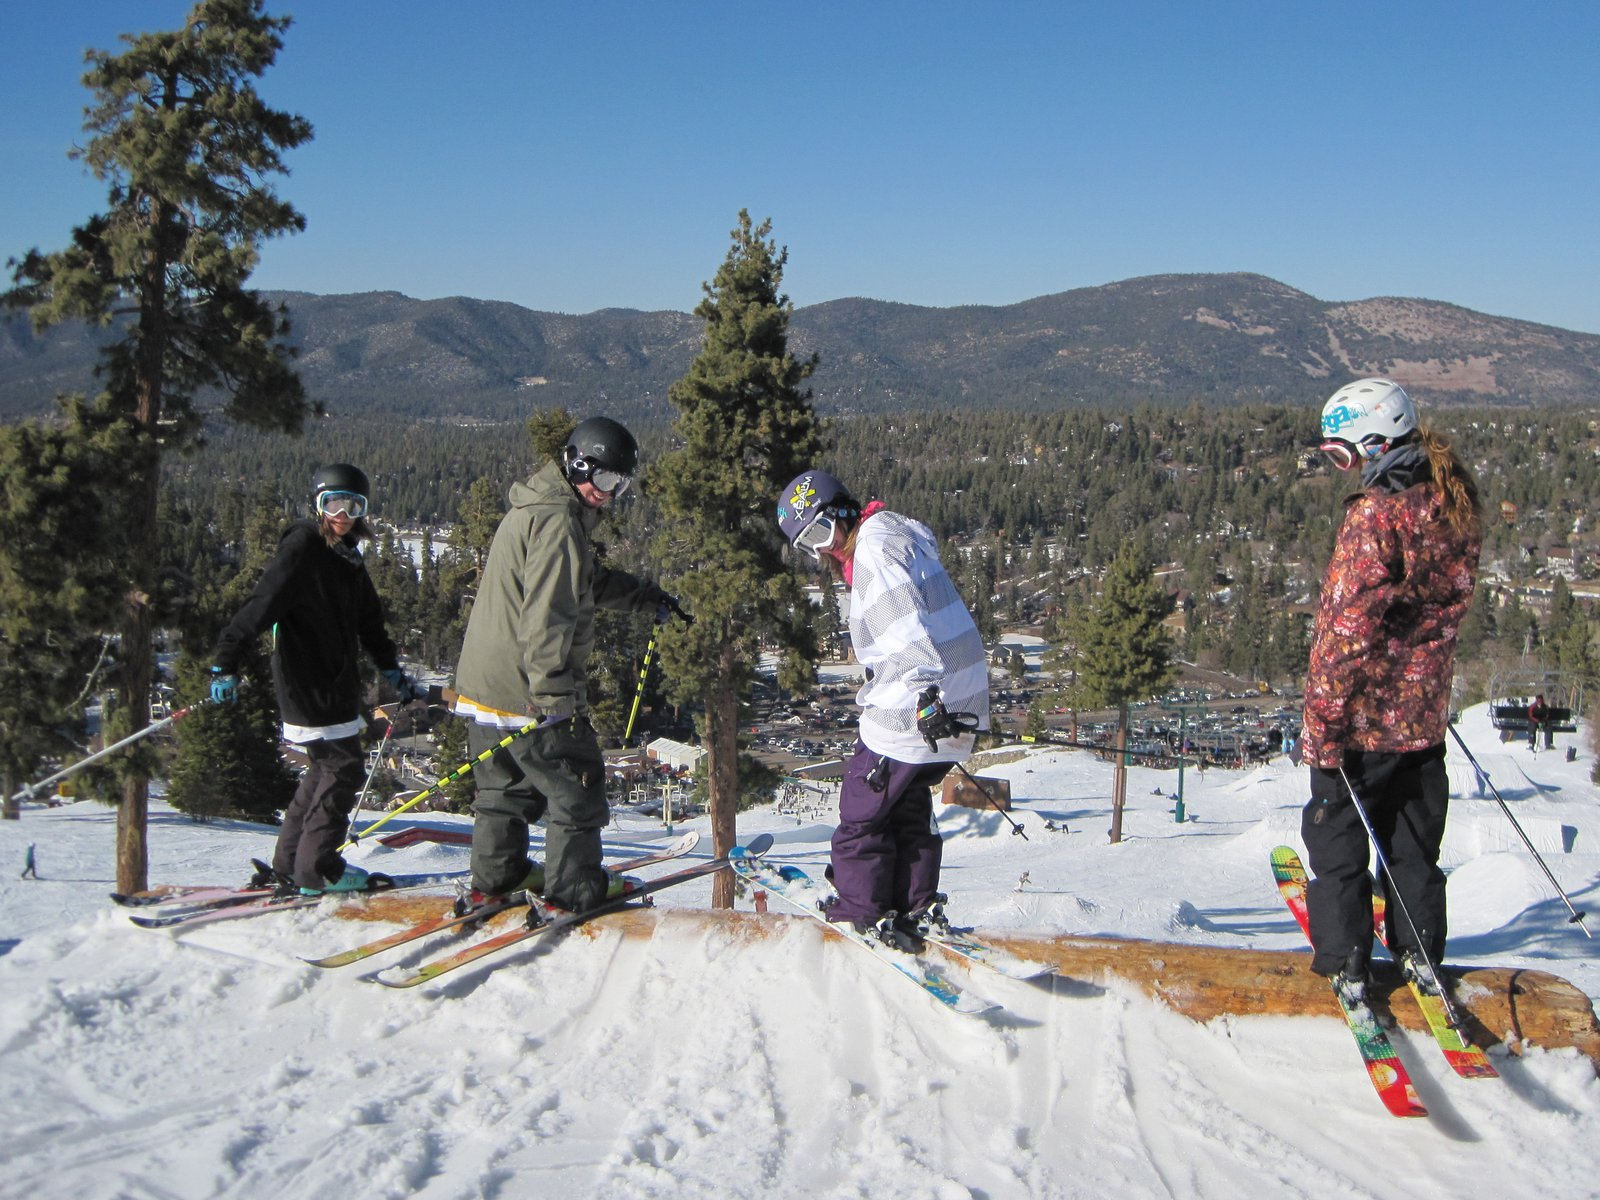 Fun day in big bear